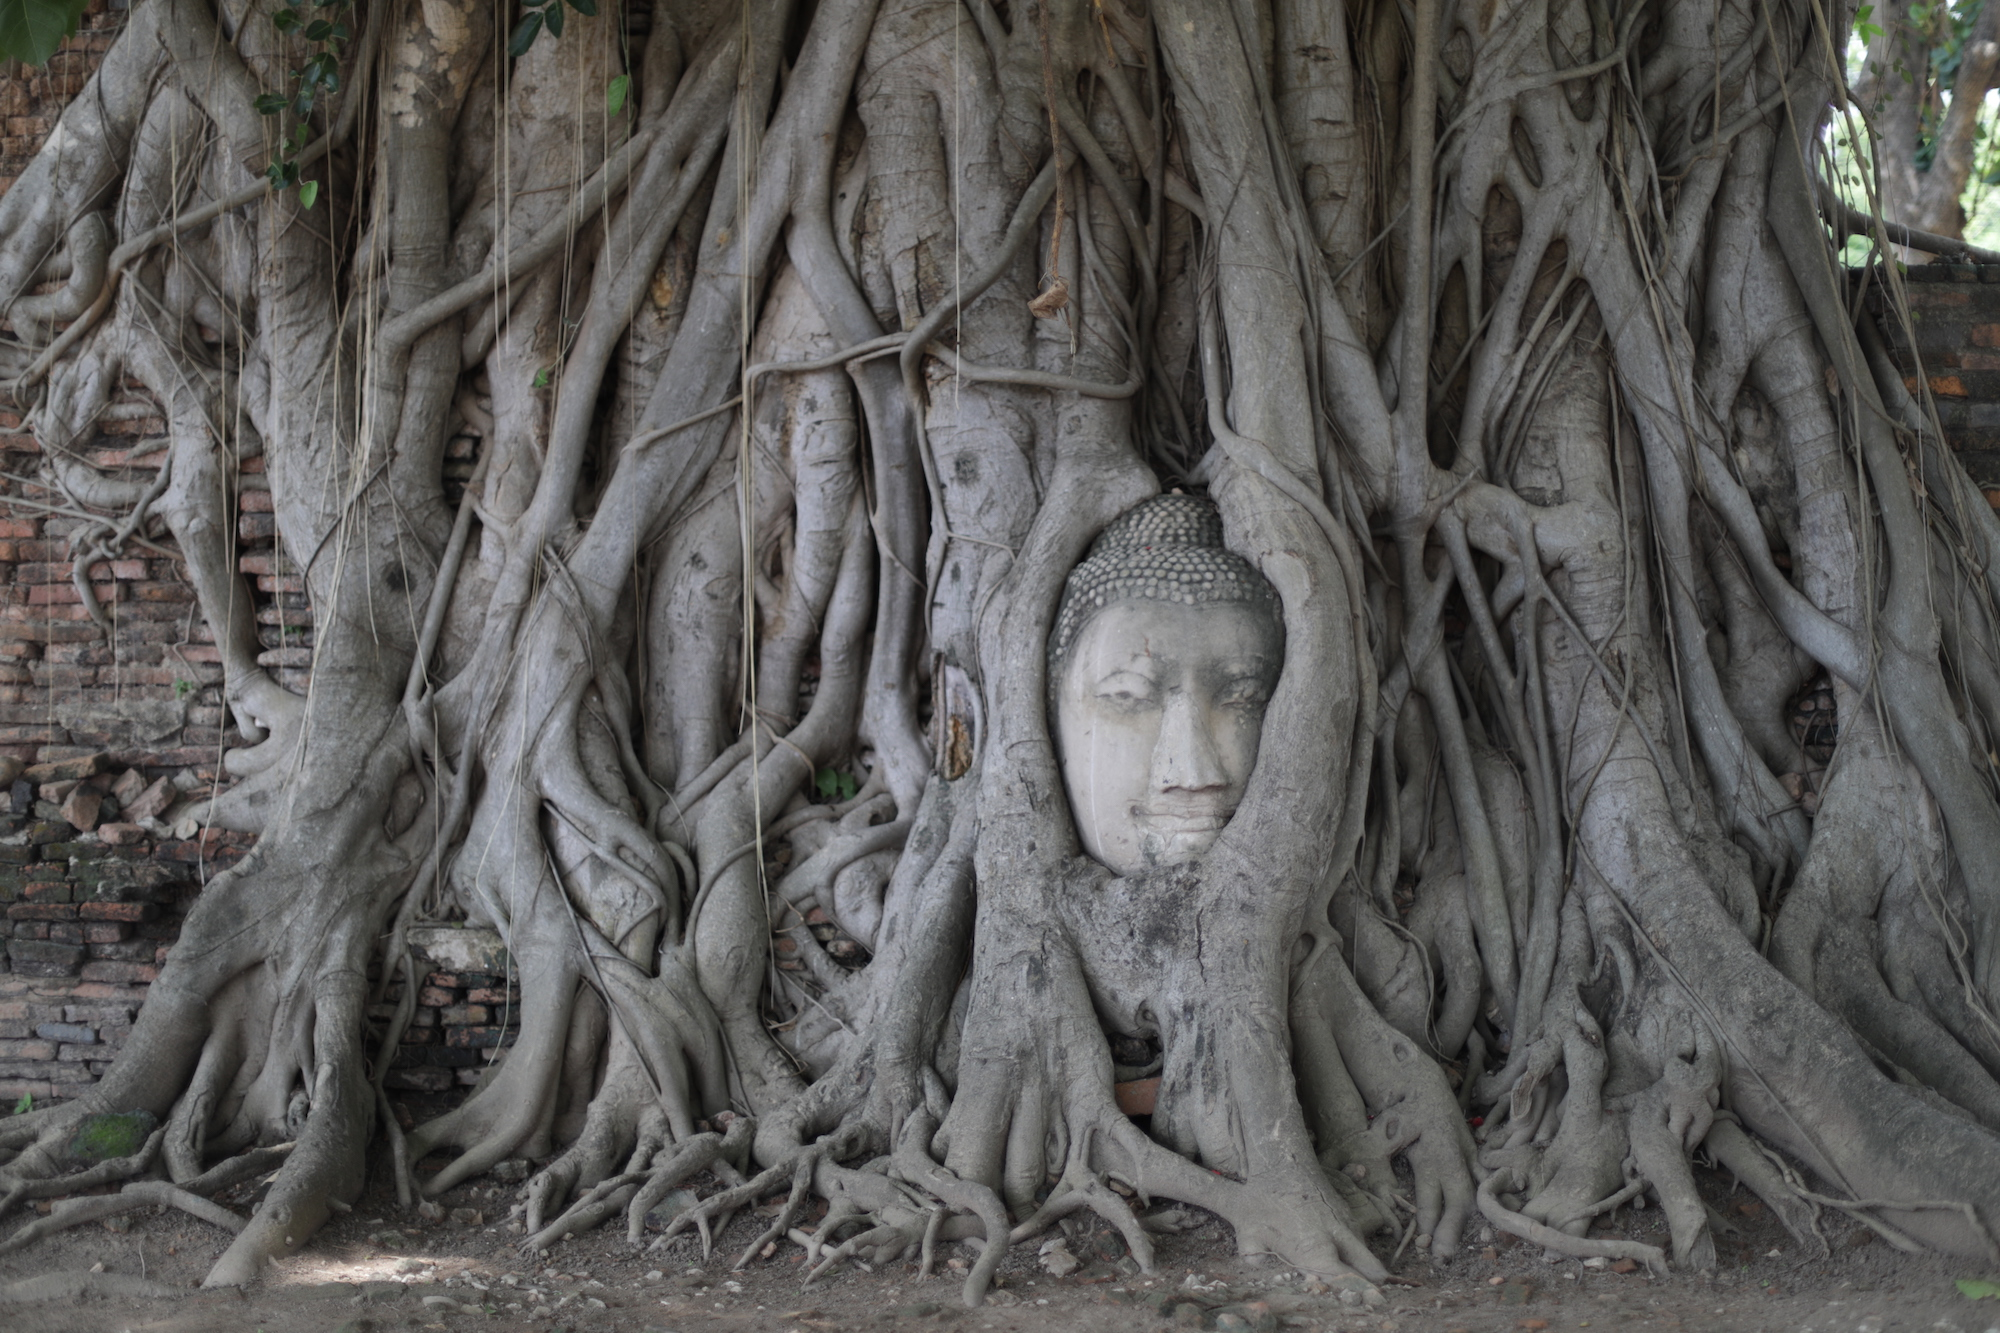 Trip to Ayutthaya, Thailand, recalls glory days of old Siam | CNN ...